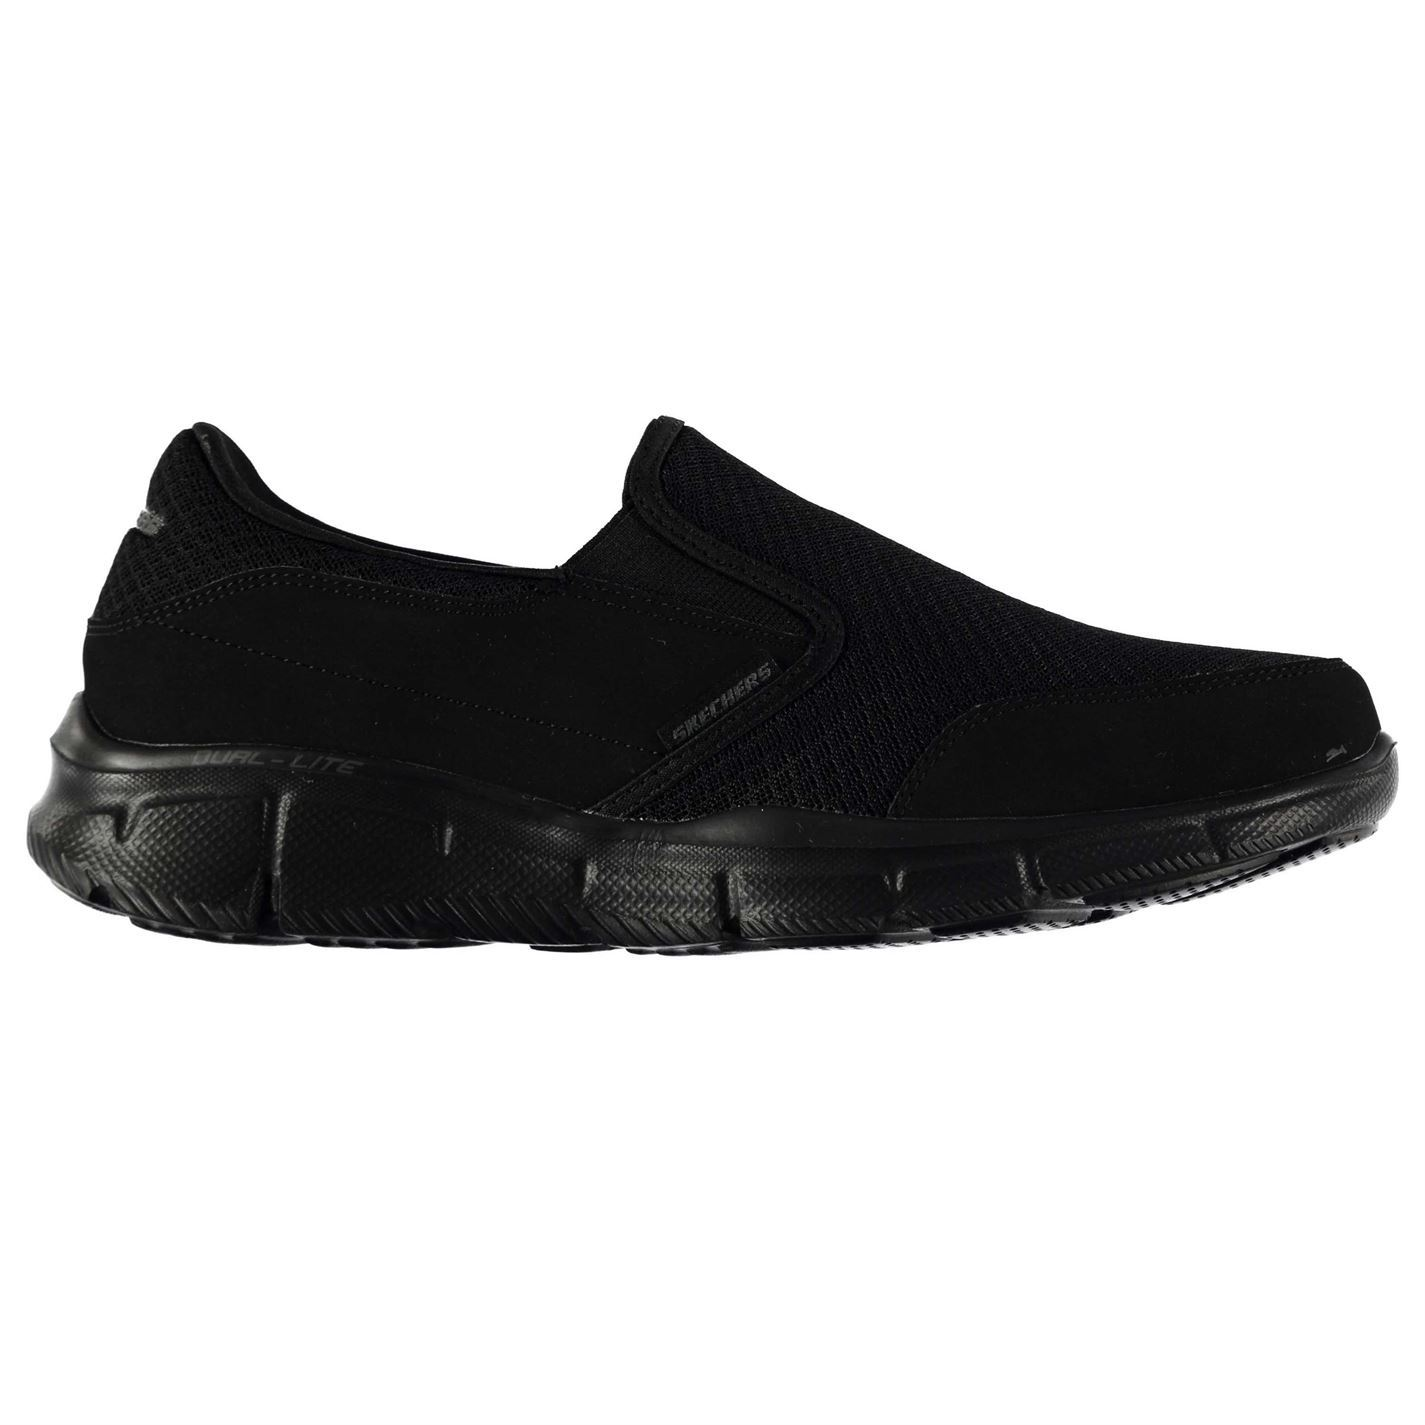 Skechers  Uomo Equaliz Per Casual Schuhes Slip On Trainers Casual Per Sneakers e54daf